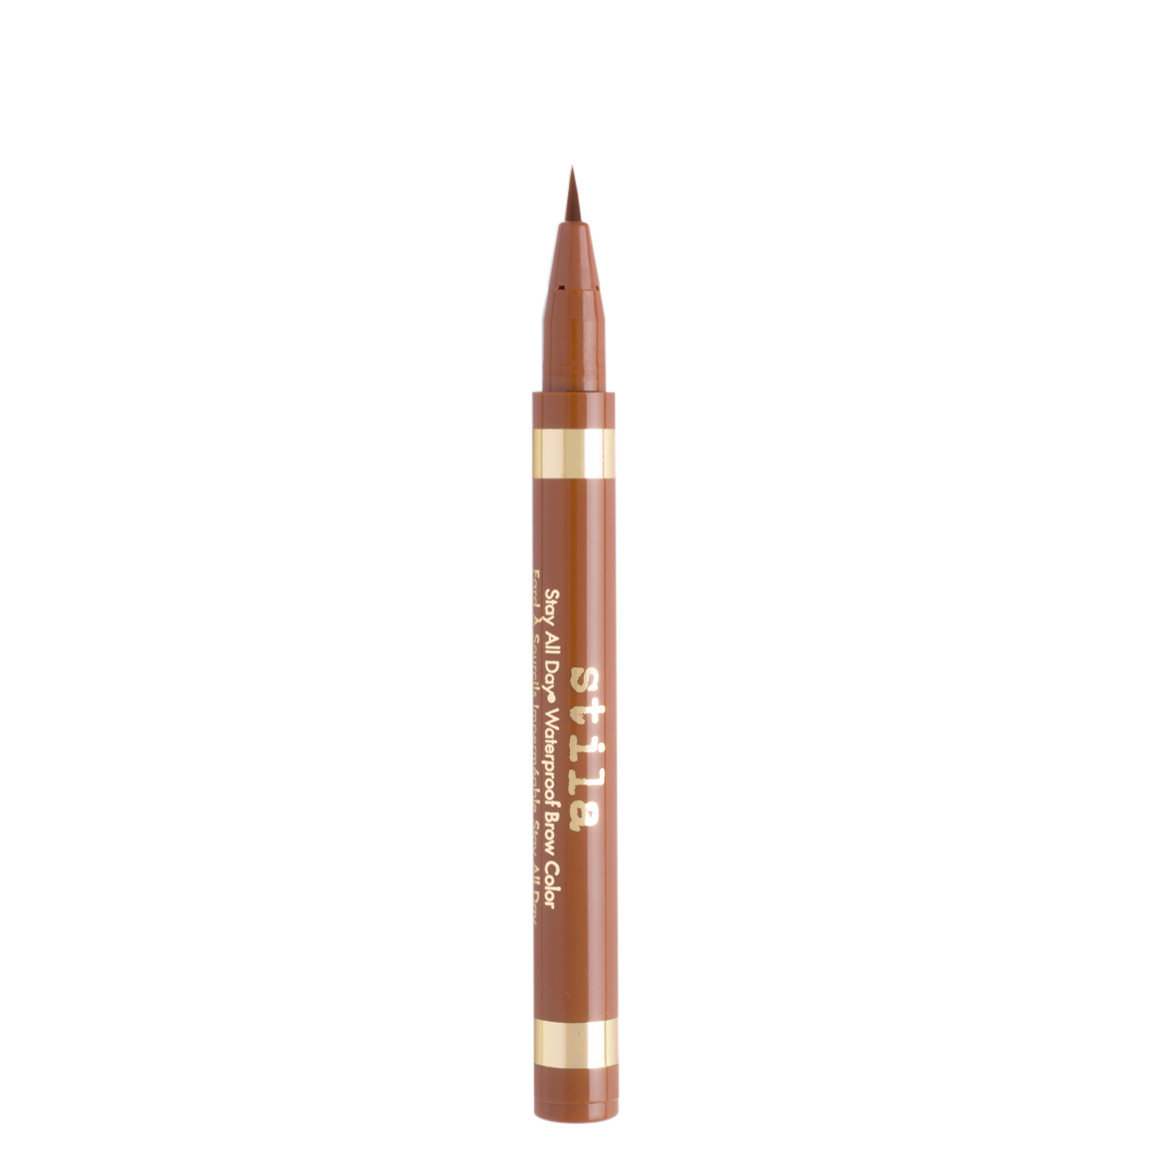 Stila Stay All Day Waterproof Brow Color Auburn